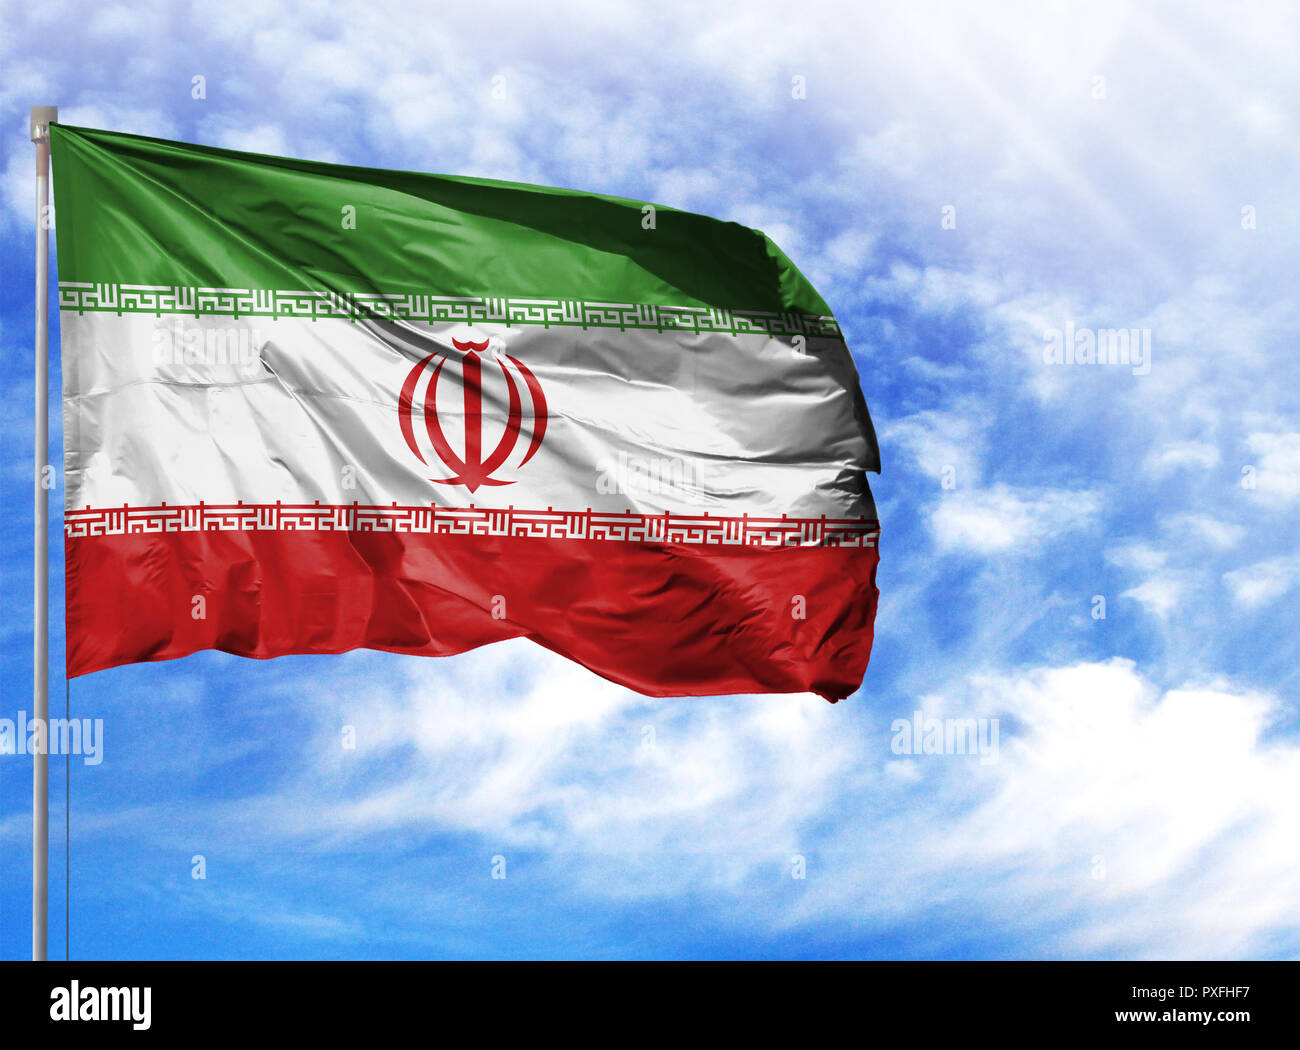 National flag of Iran on a flagpole in front of blue sky. - Stock Image